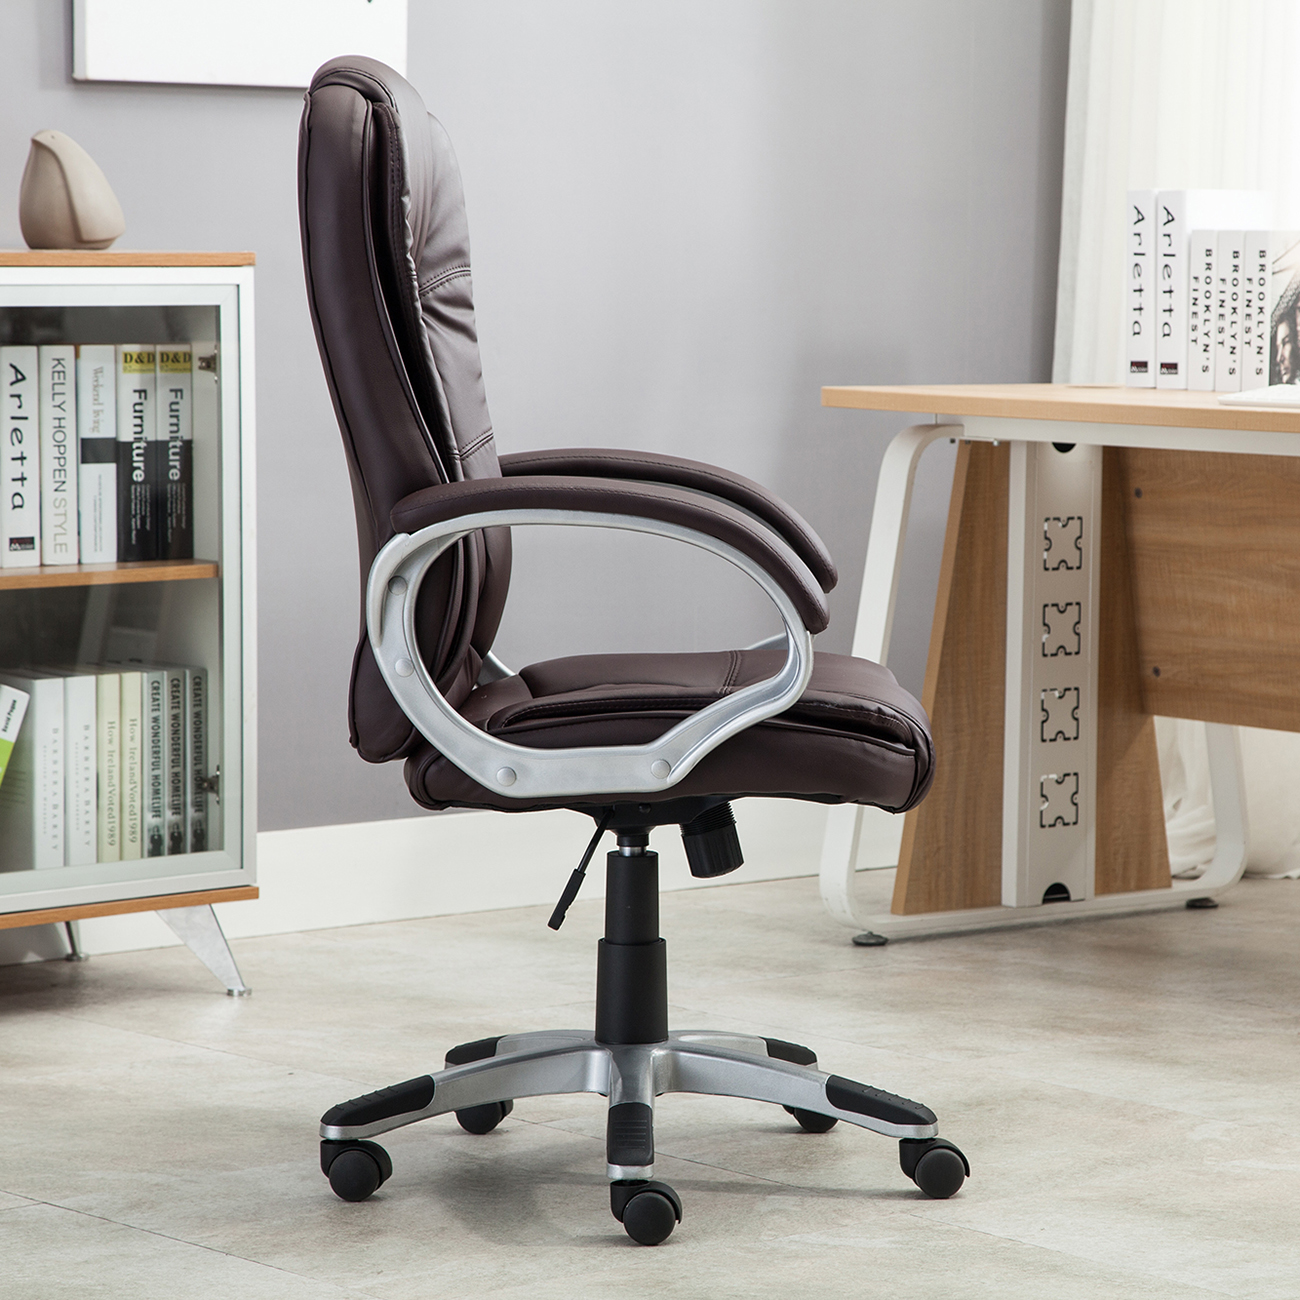 white leather modern office chair tommy bahama chairs black brown pu executive computer